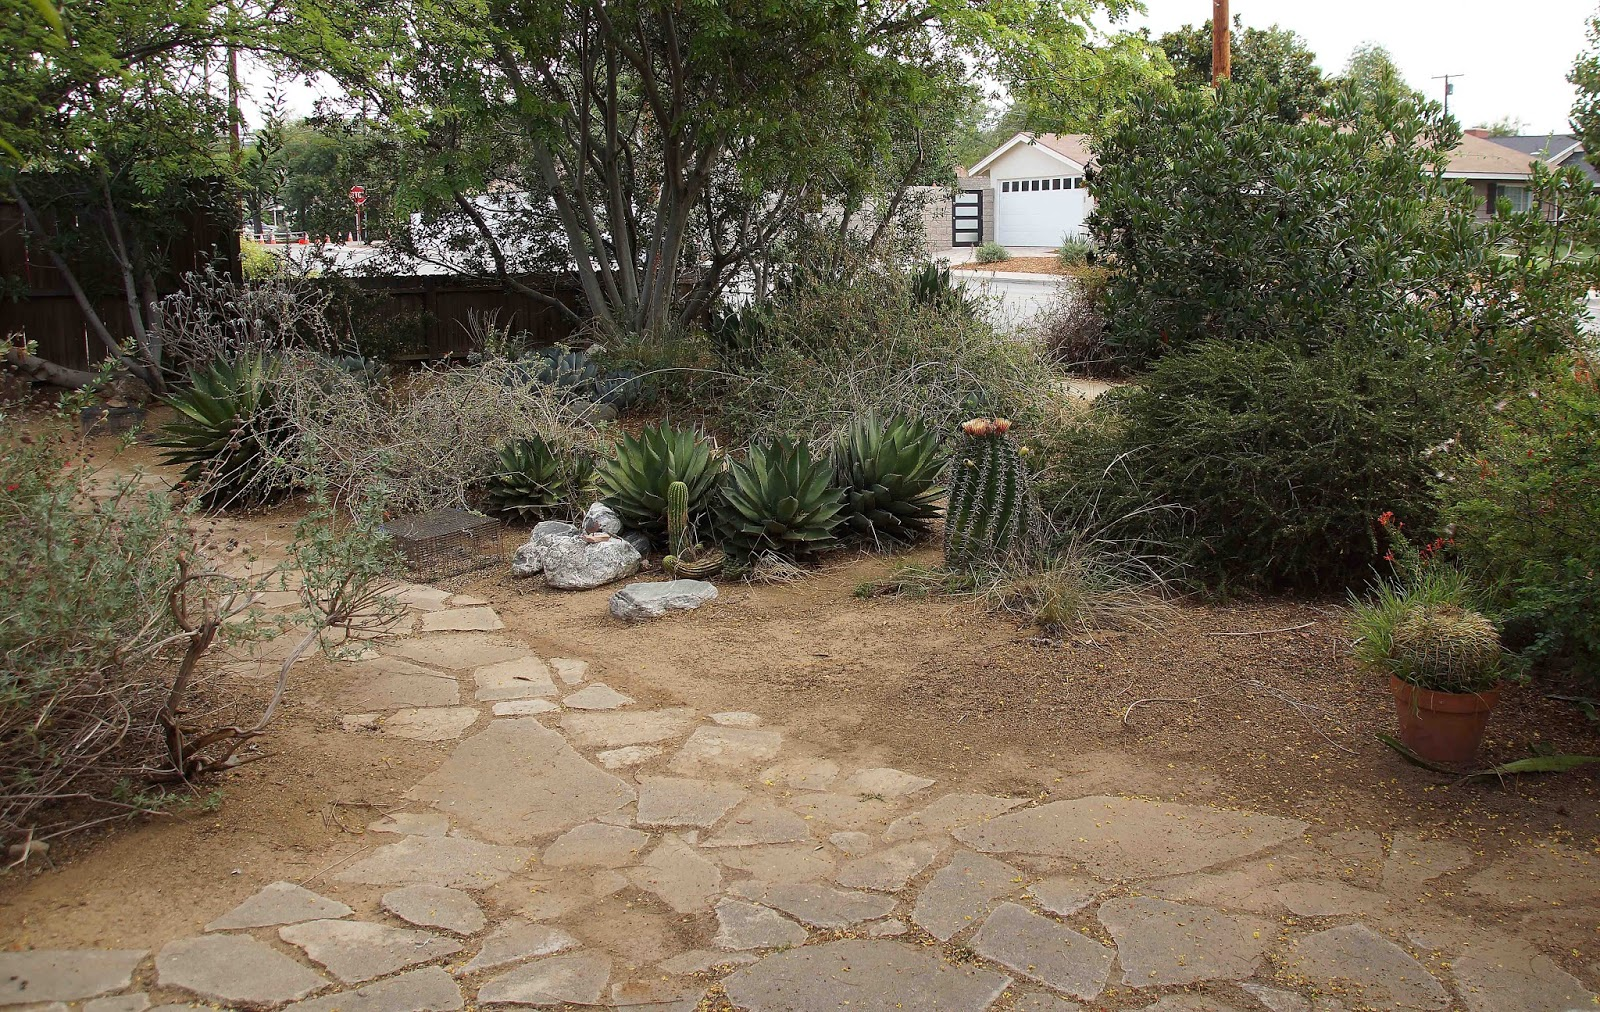 Three Lawnless Gardens: Time, Patience, Style